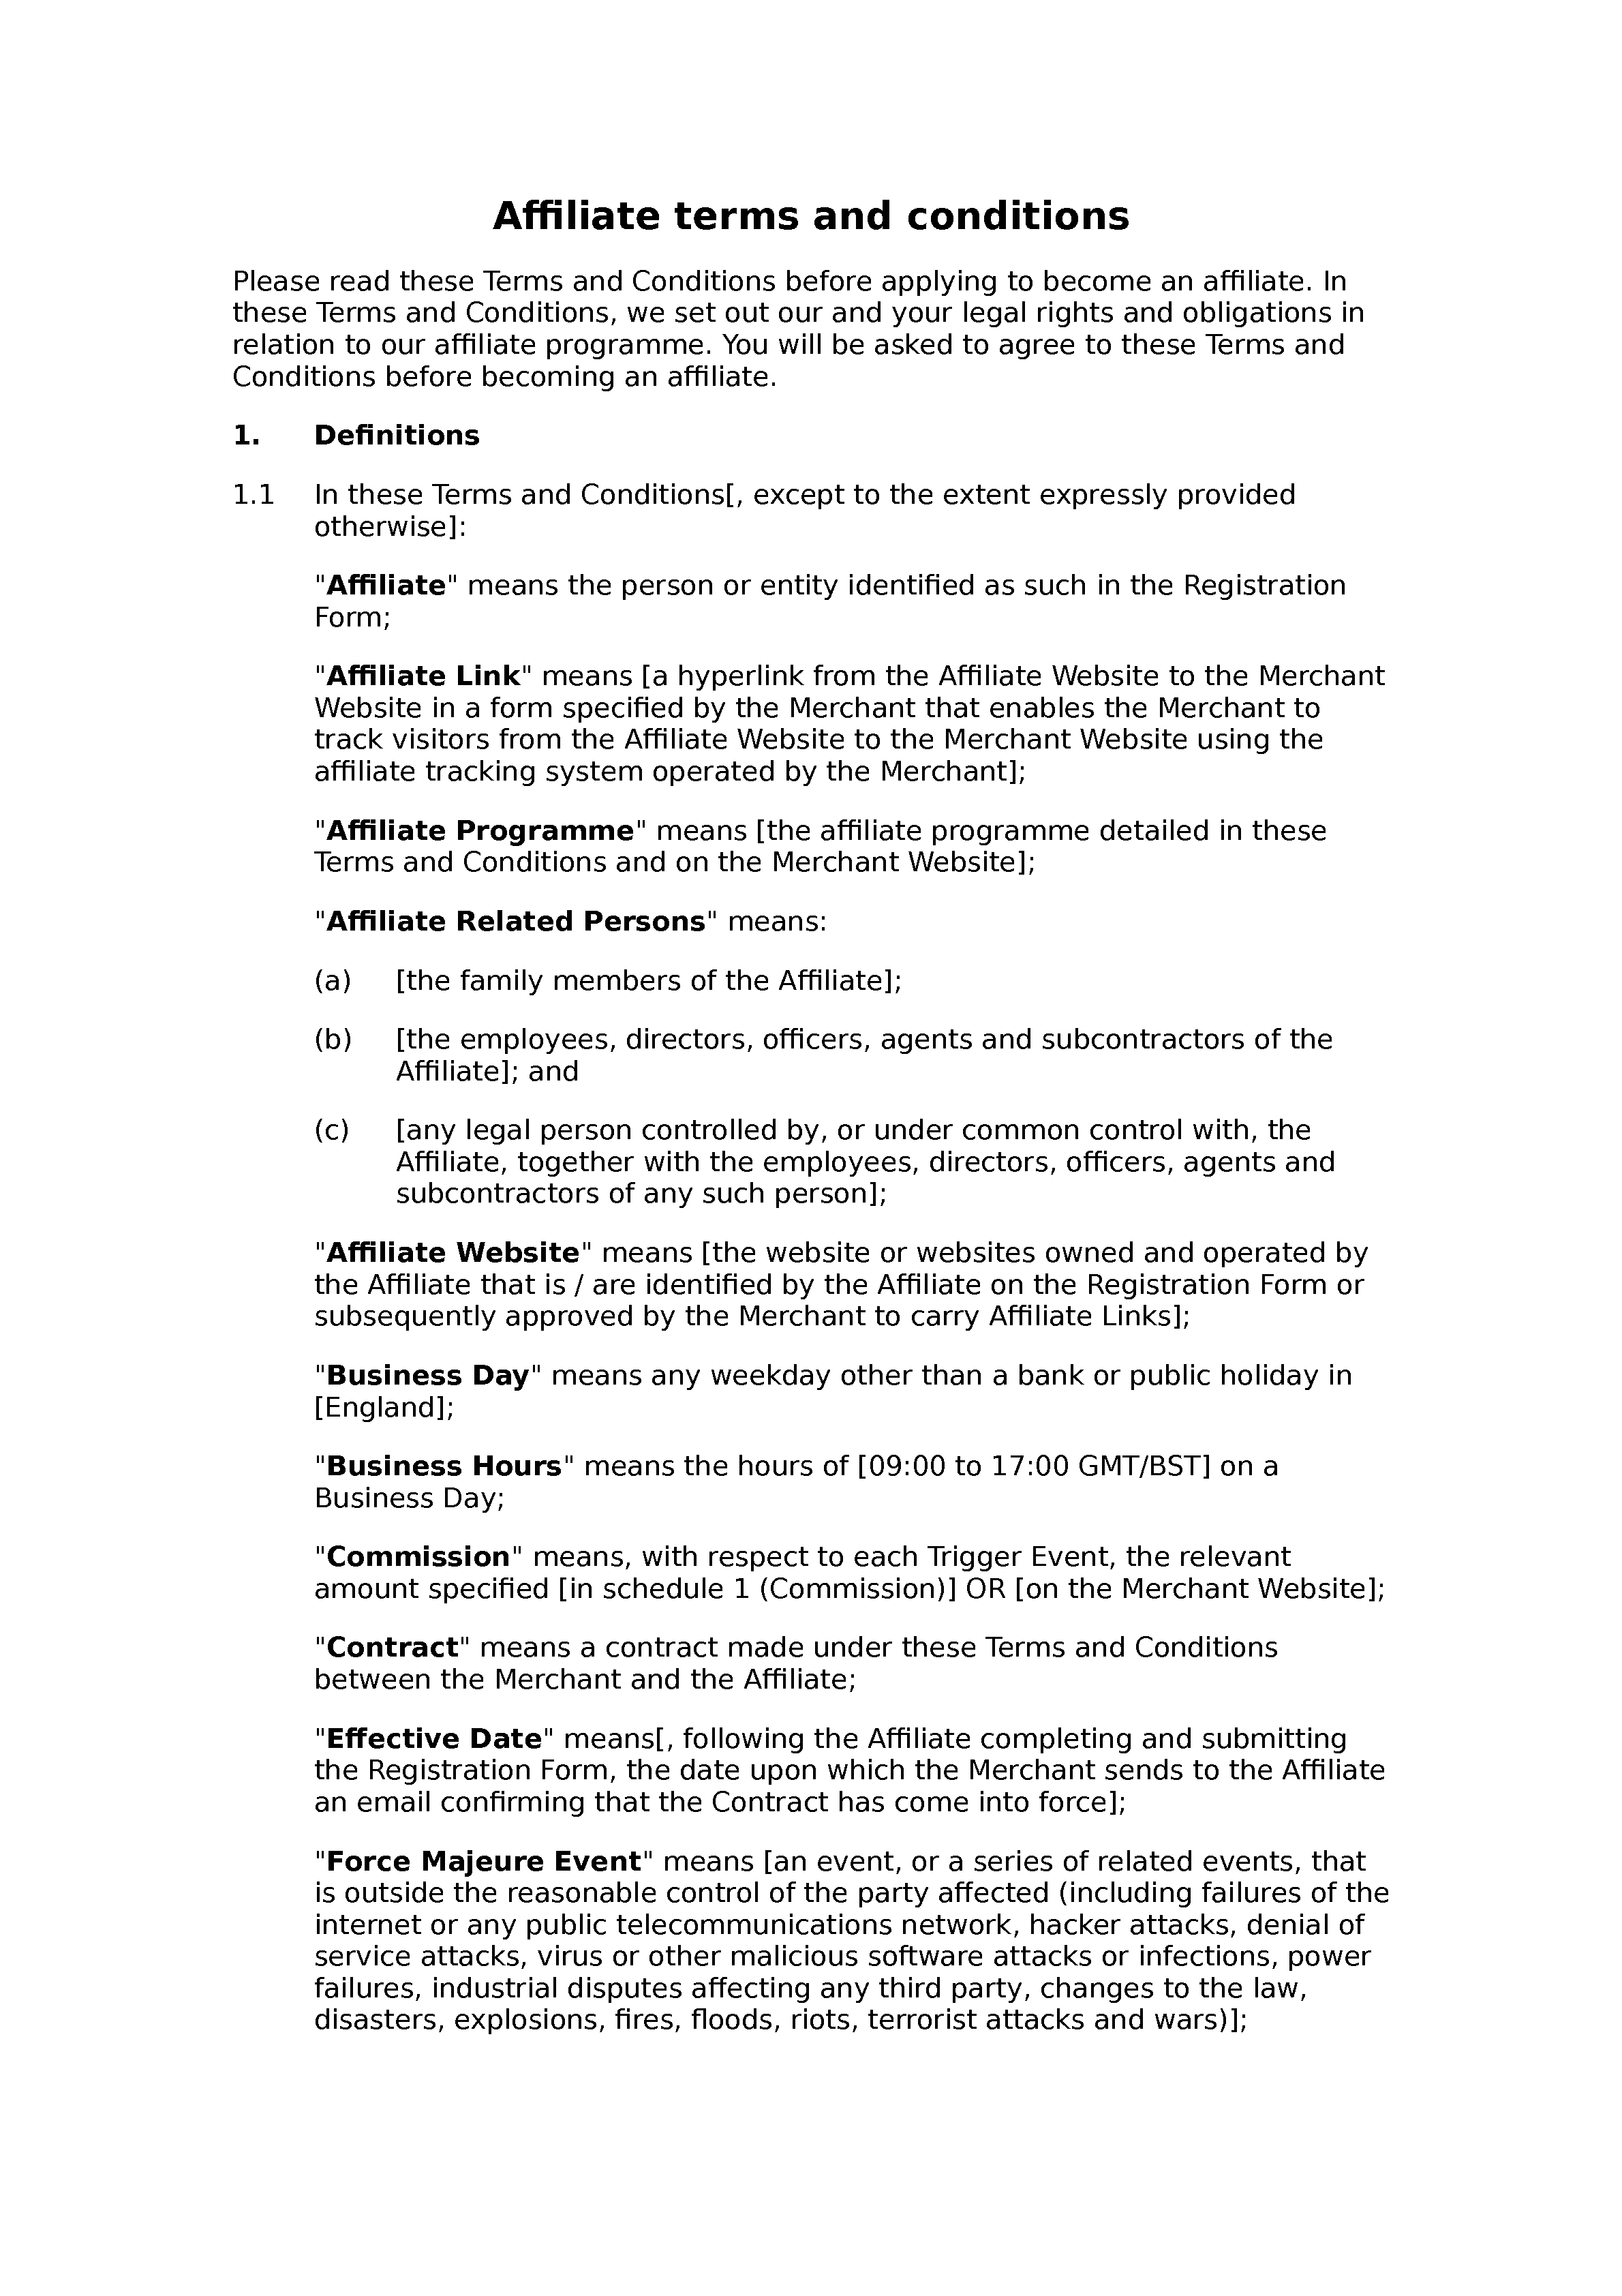 Affiliate terms and conditions (premium) document preview